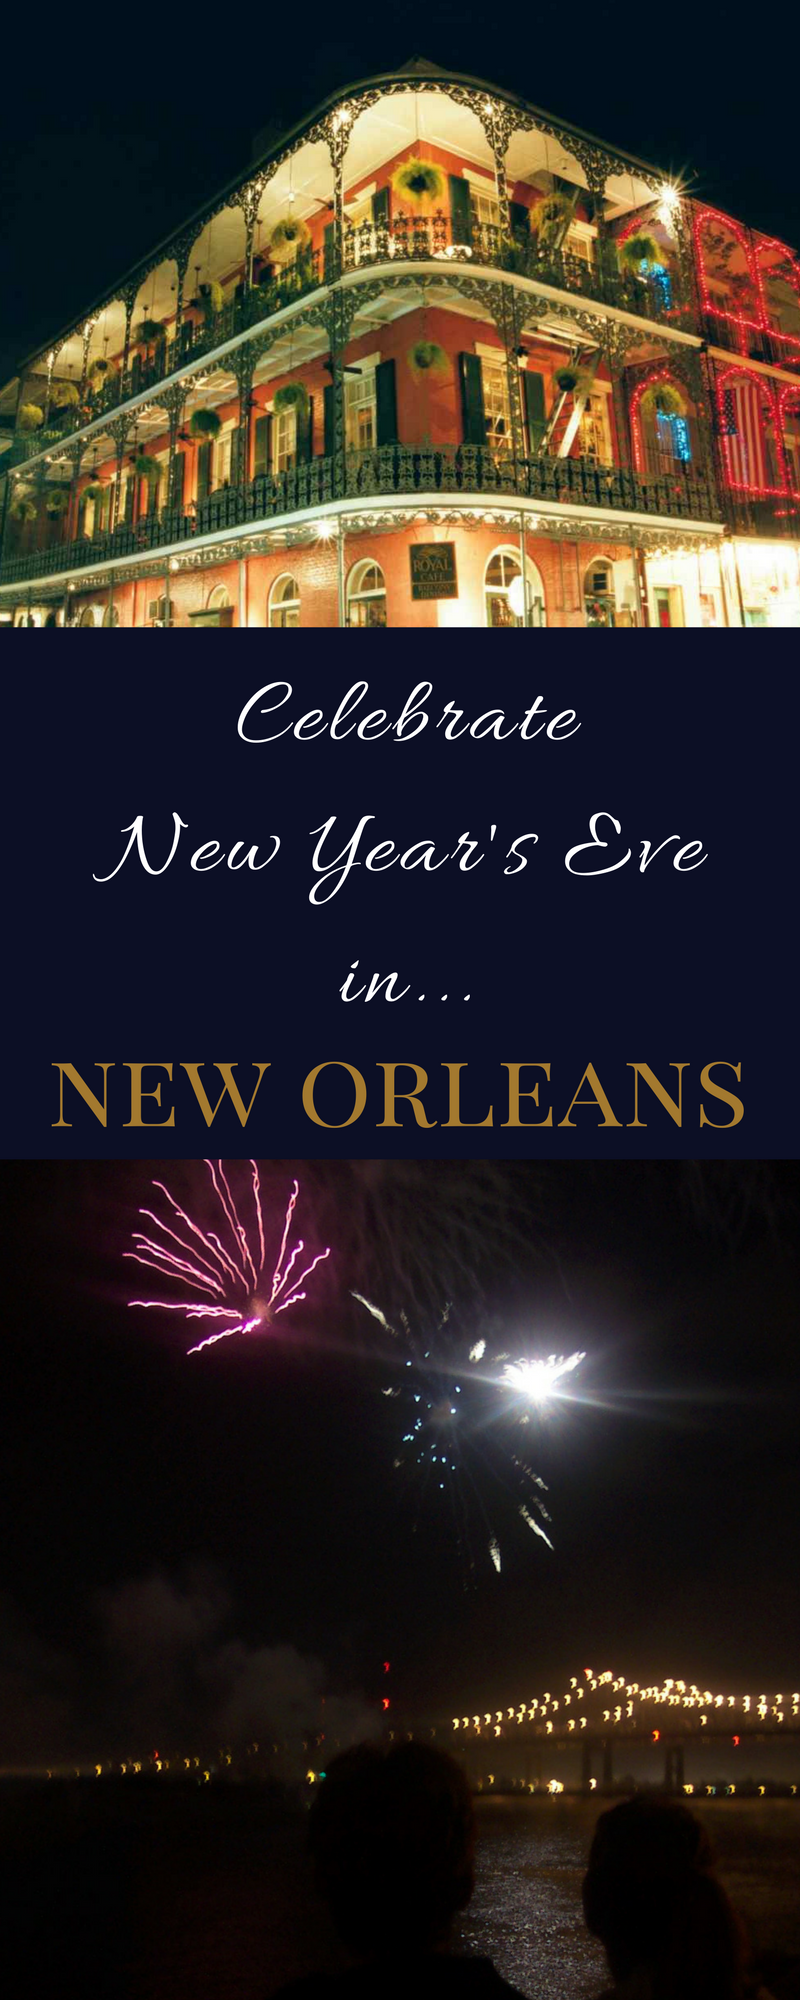 Ring in the New Year at one of the most historic spots in the French Quarter. There's still time to to book a room at Hotel Monteleone and take advantage of the fabulous New Year's Eve Package. Plan your visit to New Orleans today! (Photo credits: Falkue and Alli)